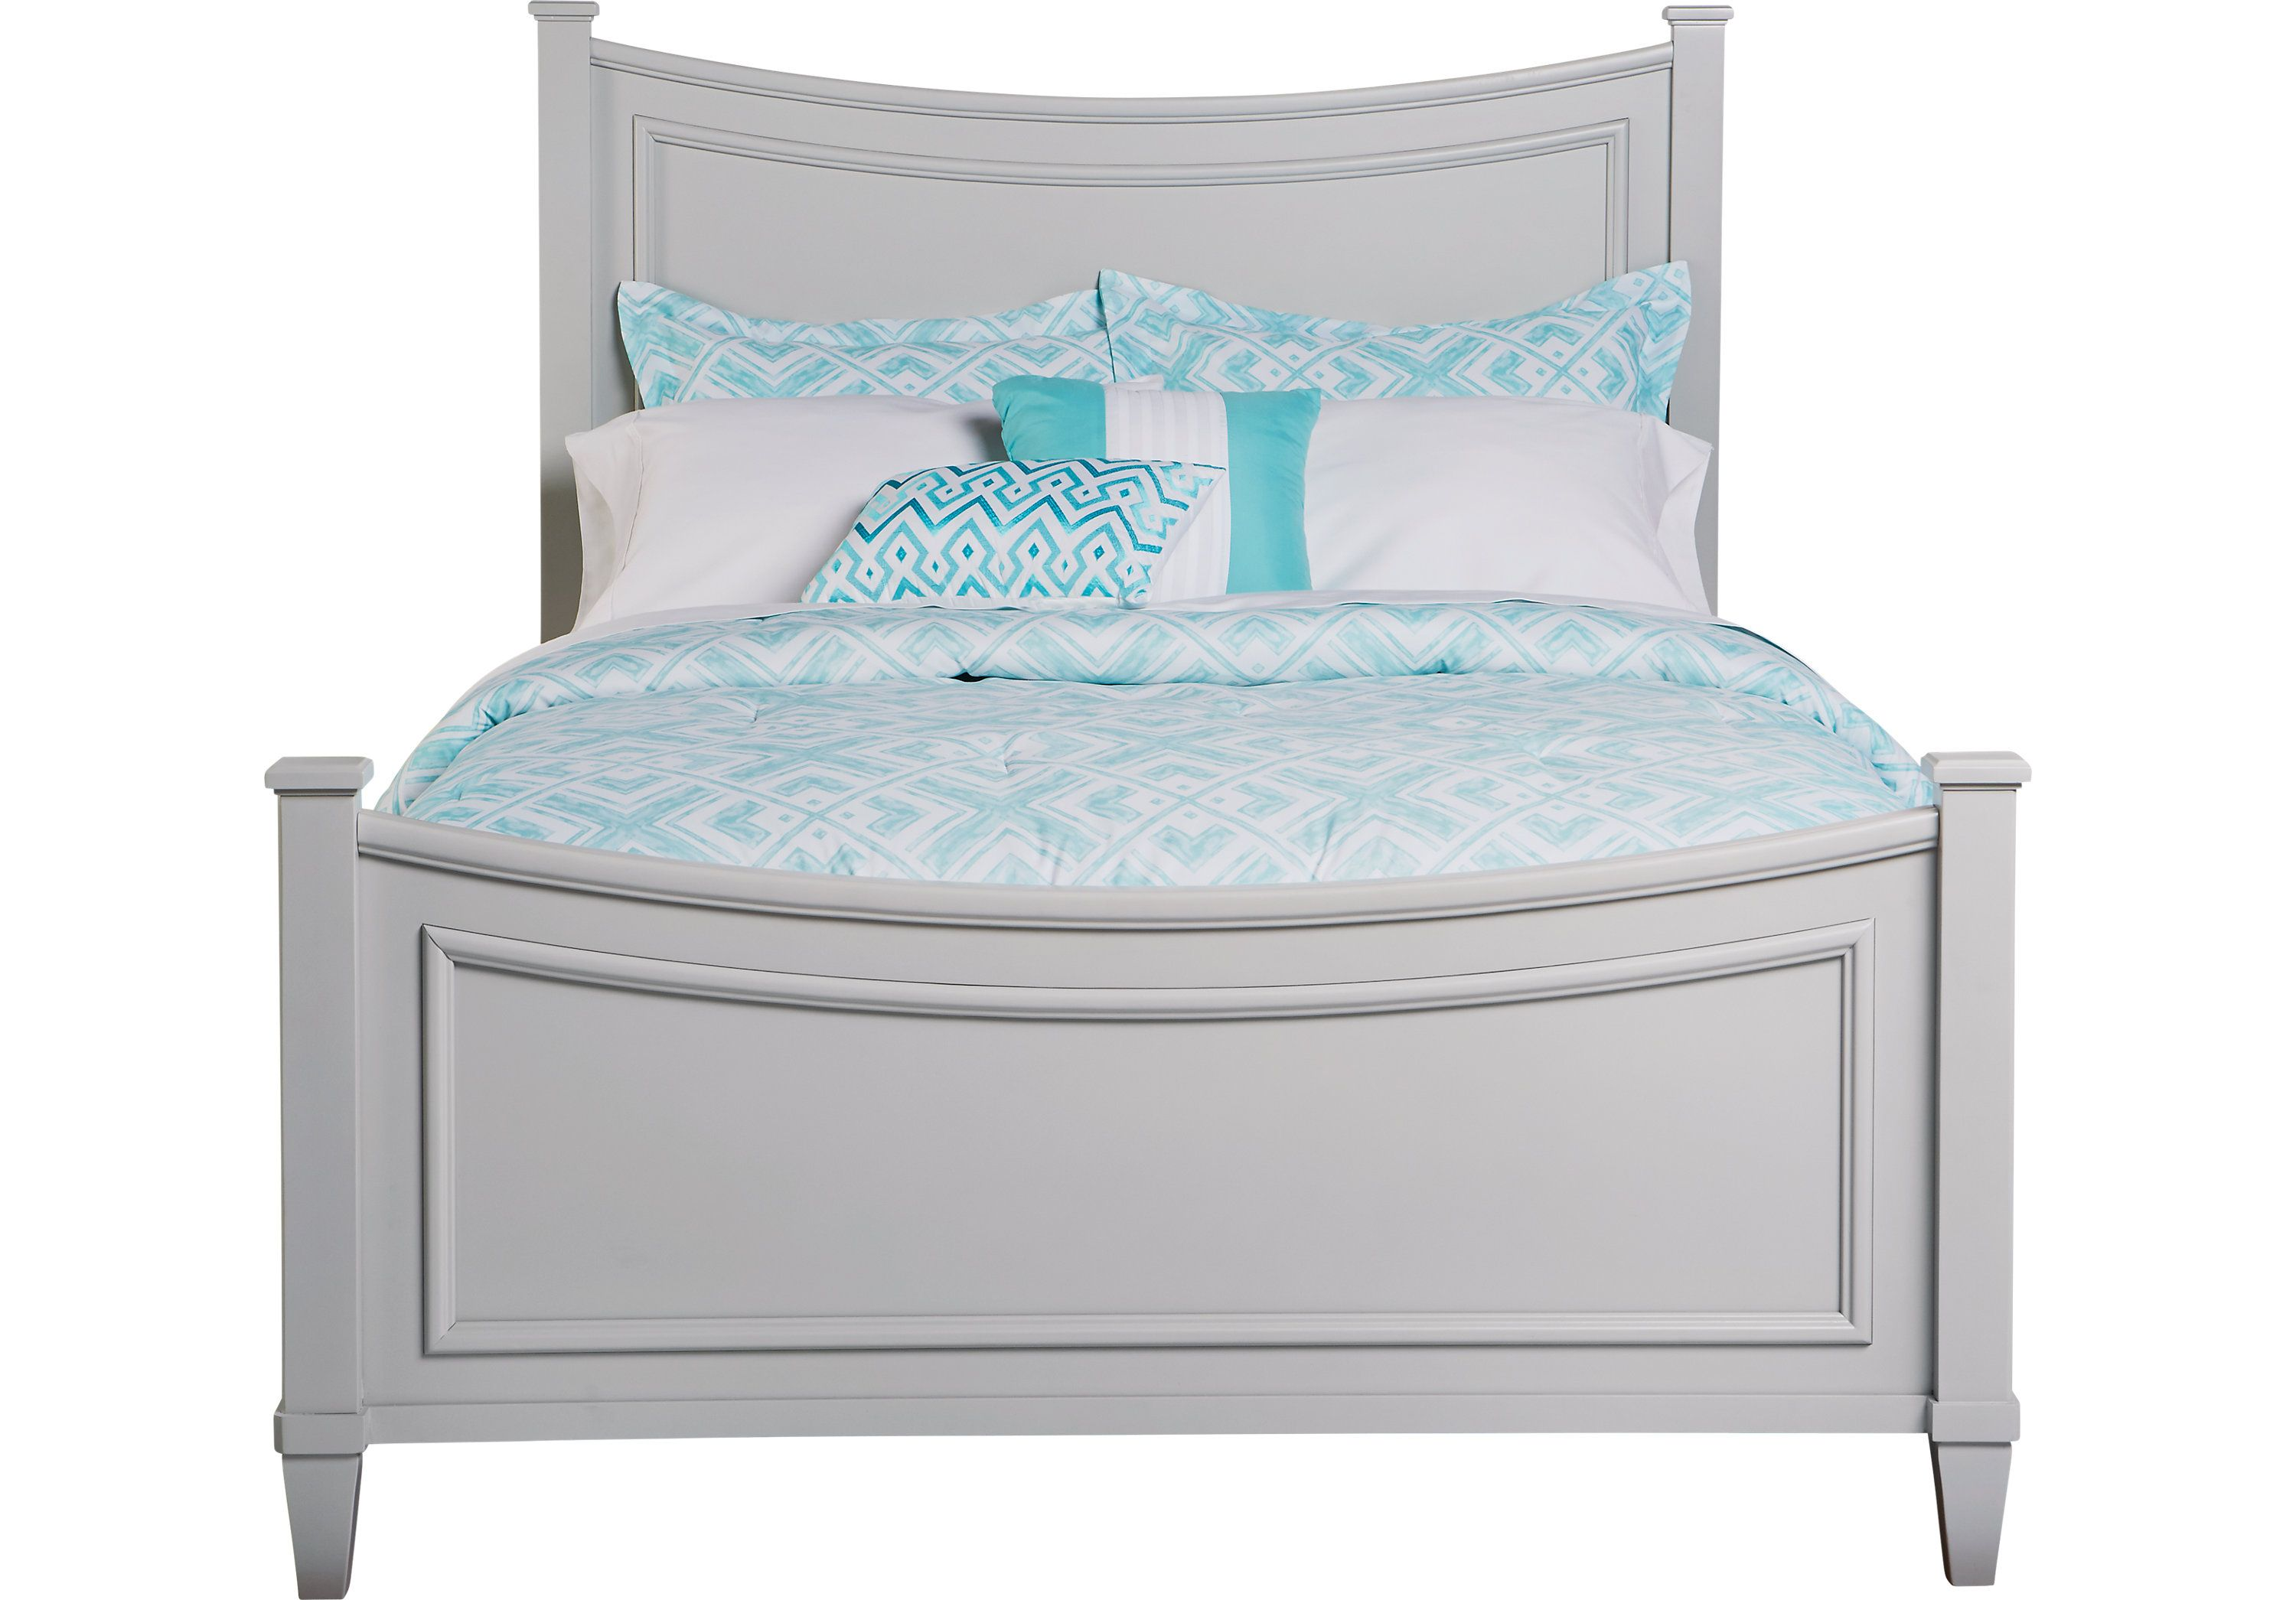 Argington petra toddler bed - Picture Of Jaclyn Place Gray 5 Pc Twin Bedroom From Teen Bedroom Sets Furniture Nursery Pinterest Bedroom Sets Teen Bedroom And Teen Bedroom Sets